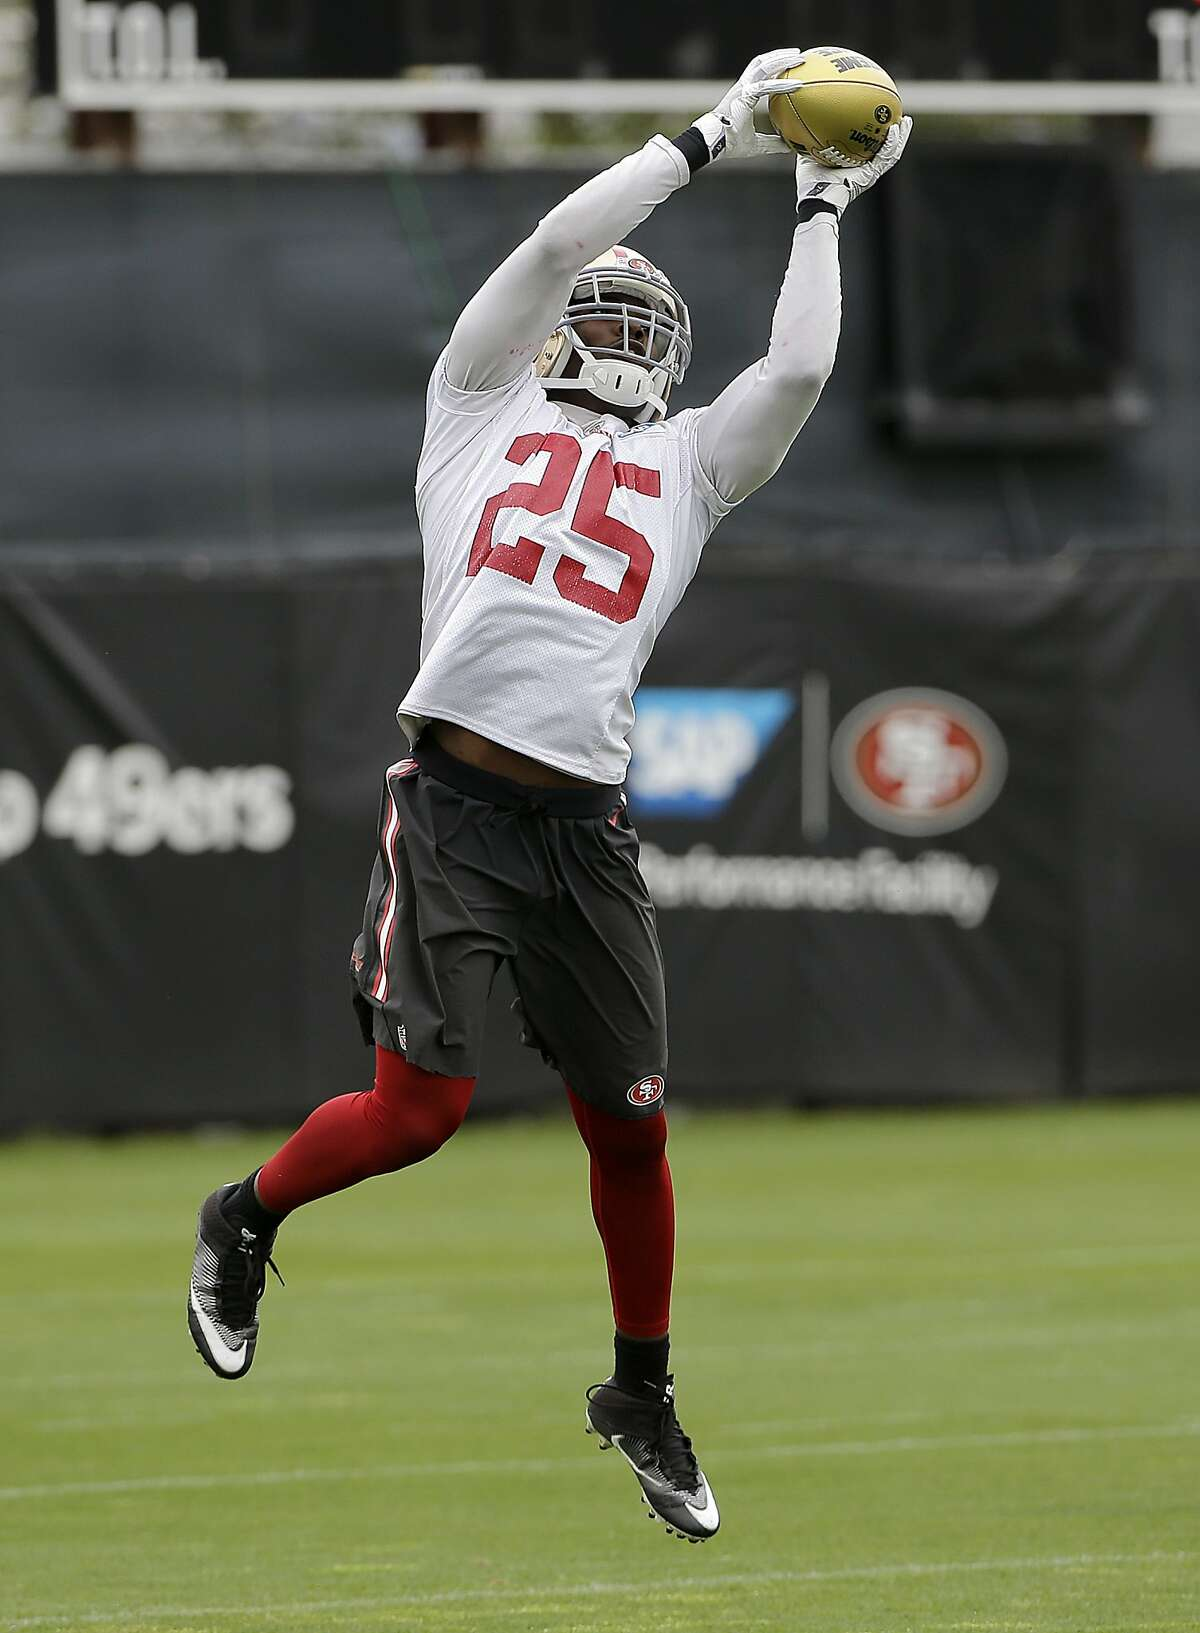 San Francisco 49ers' Jimmie Ward catches a pass during the team's organized team activity at its NFL football training facility in Santa Clara, Calif., Thursday, June 8, 2017. (AP Photo/Jeff Chiu)